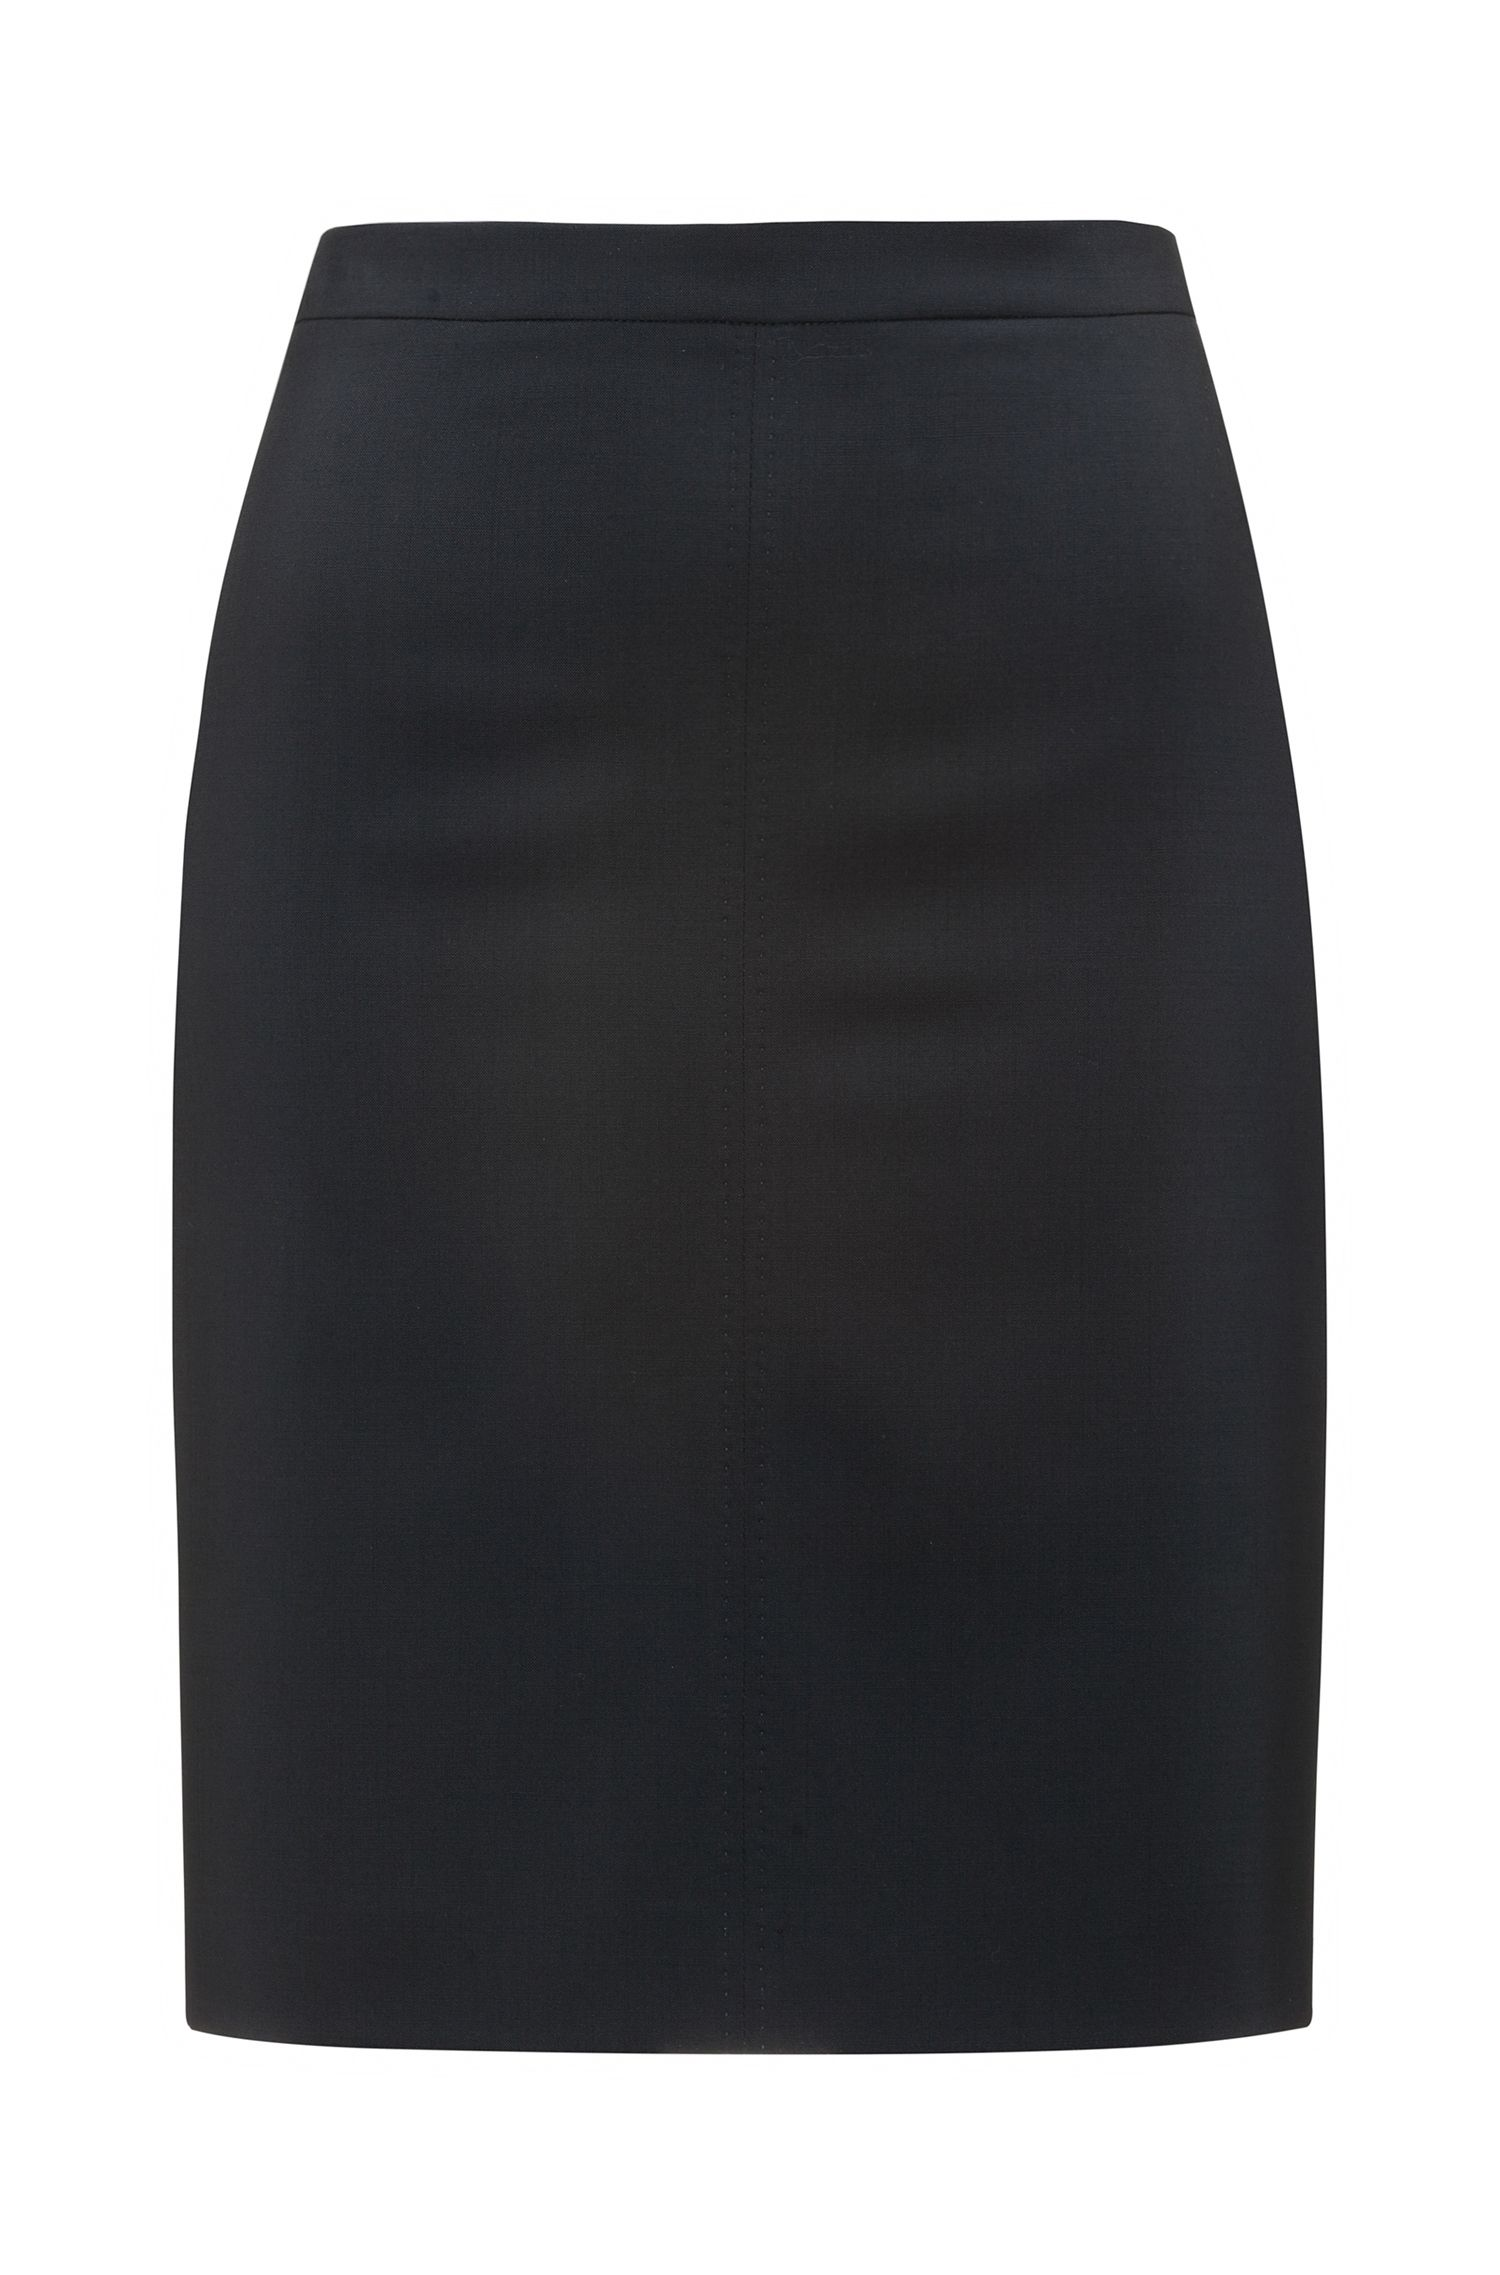 Regular-fit pencil skirt in virgin wool blend